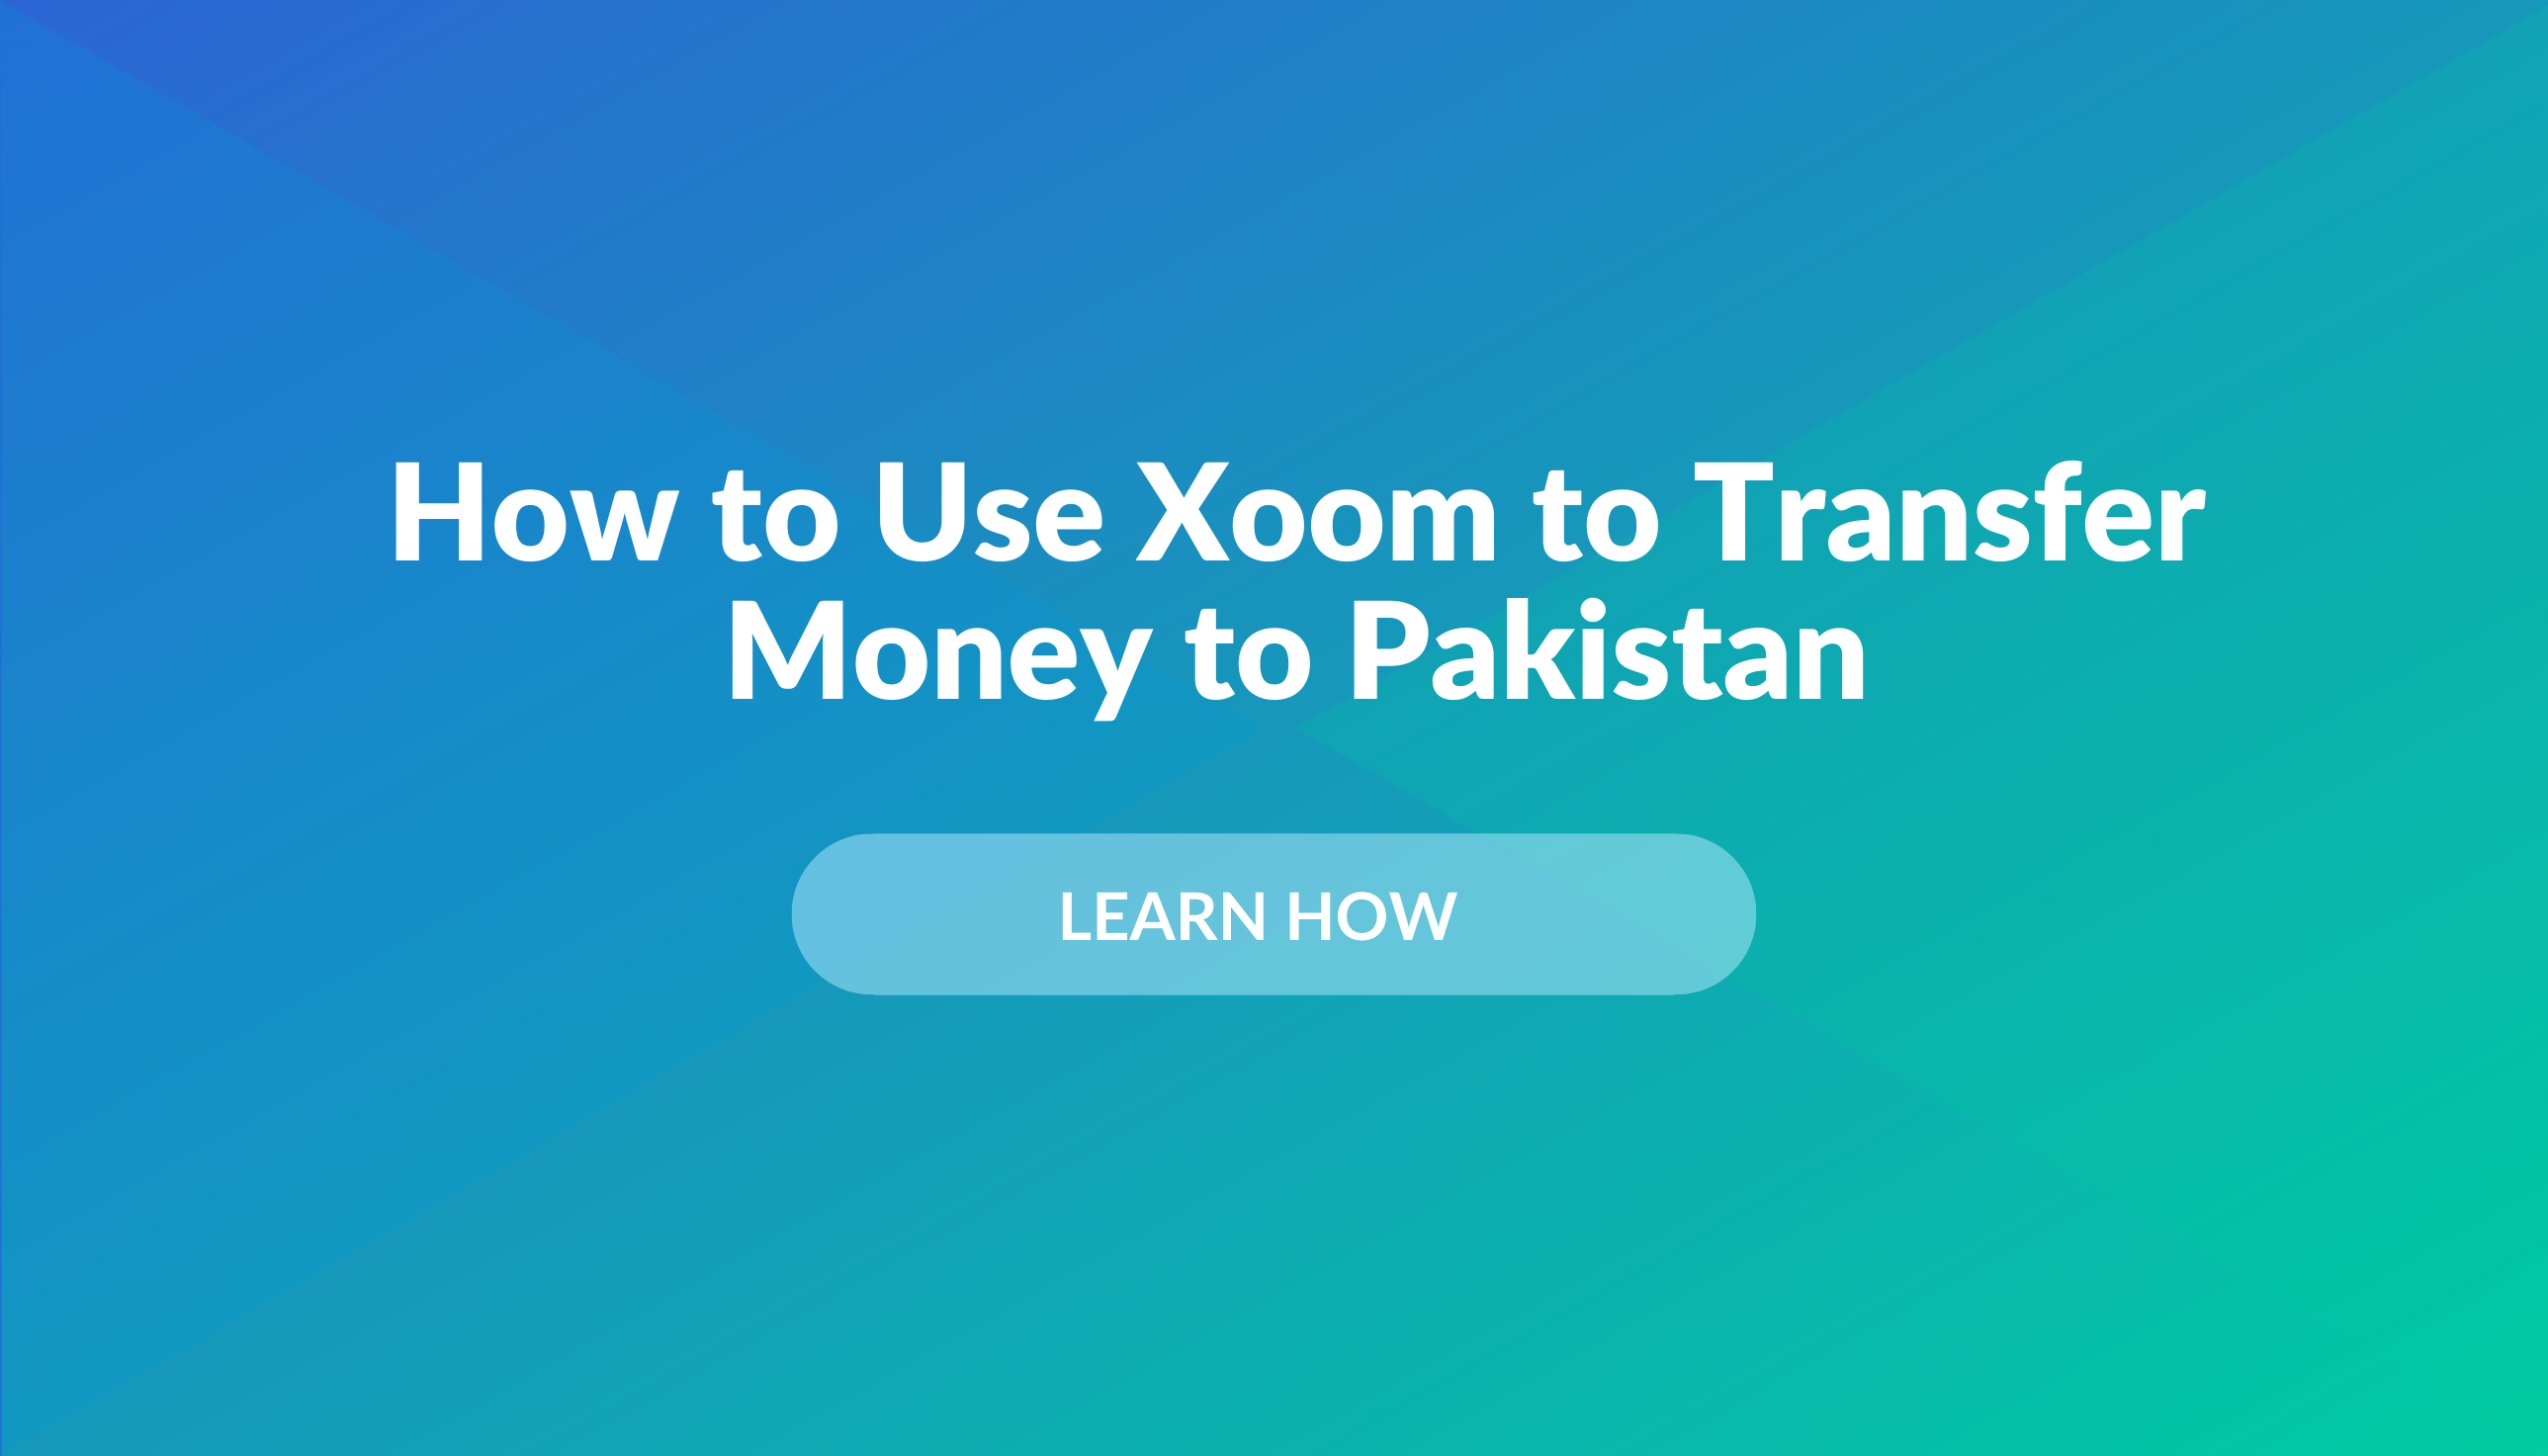 Thinking of using Xoom for a money transfer to Pakistan?